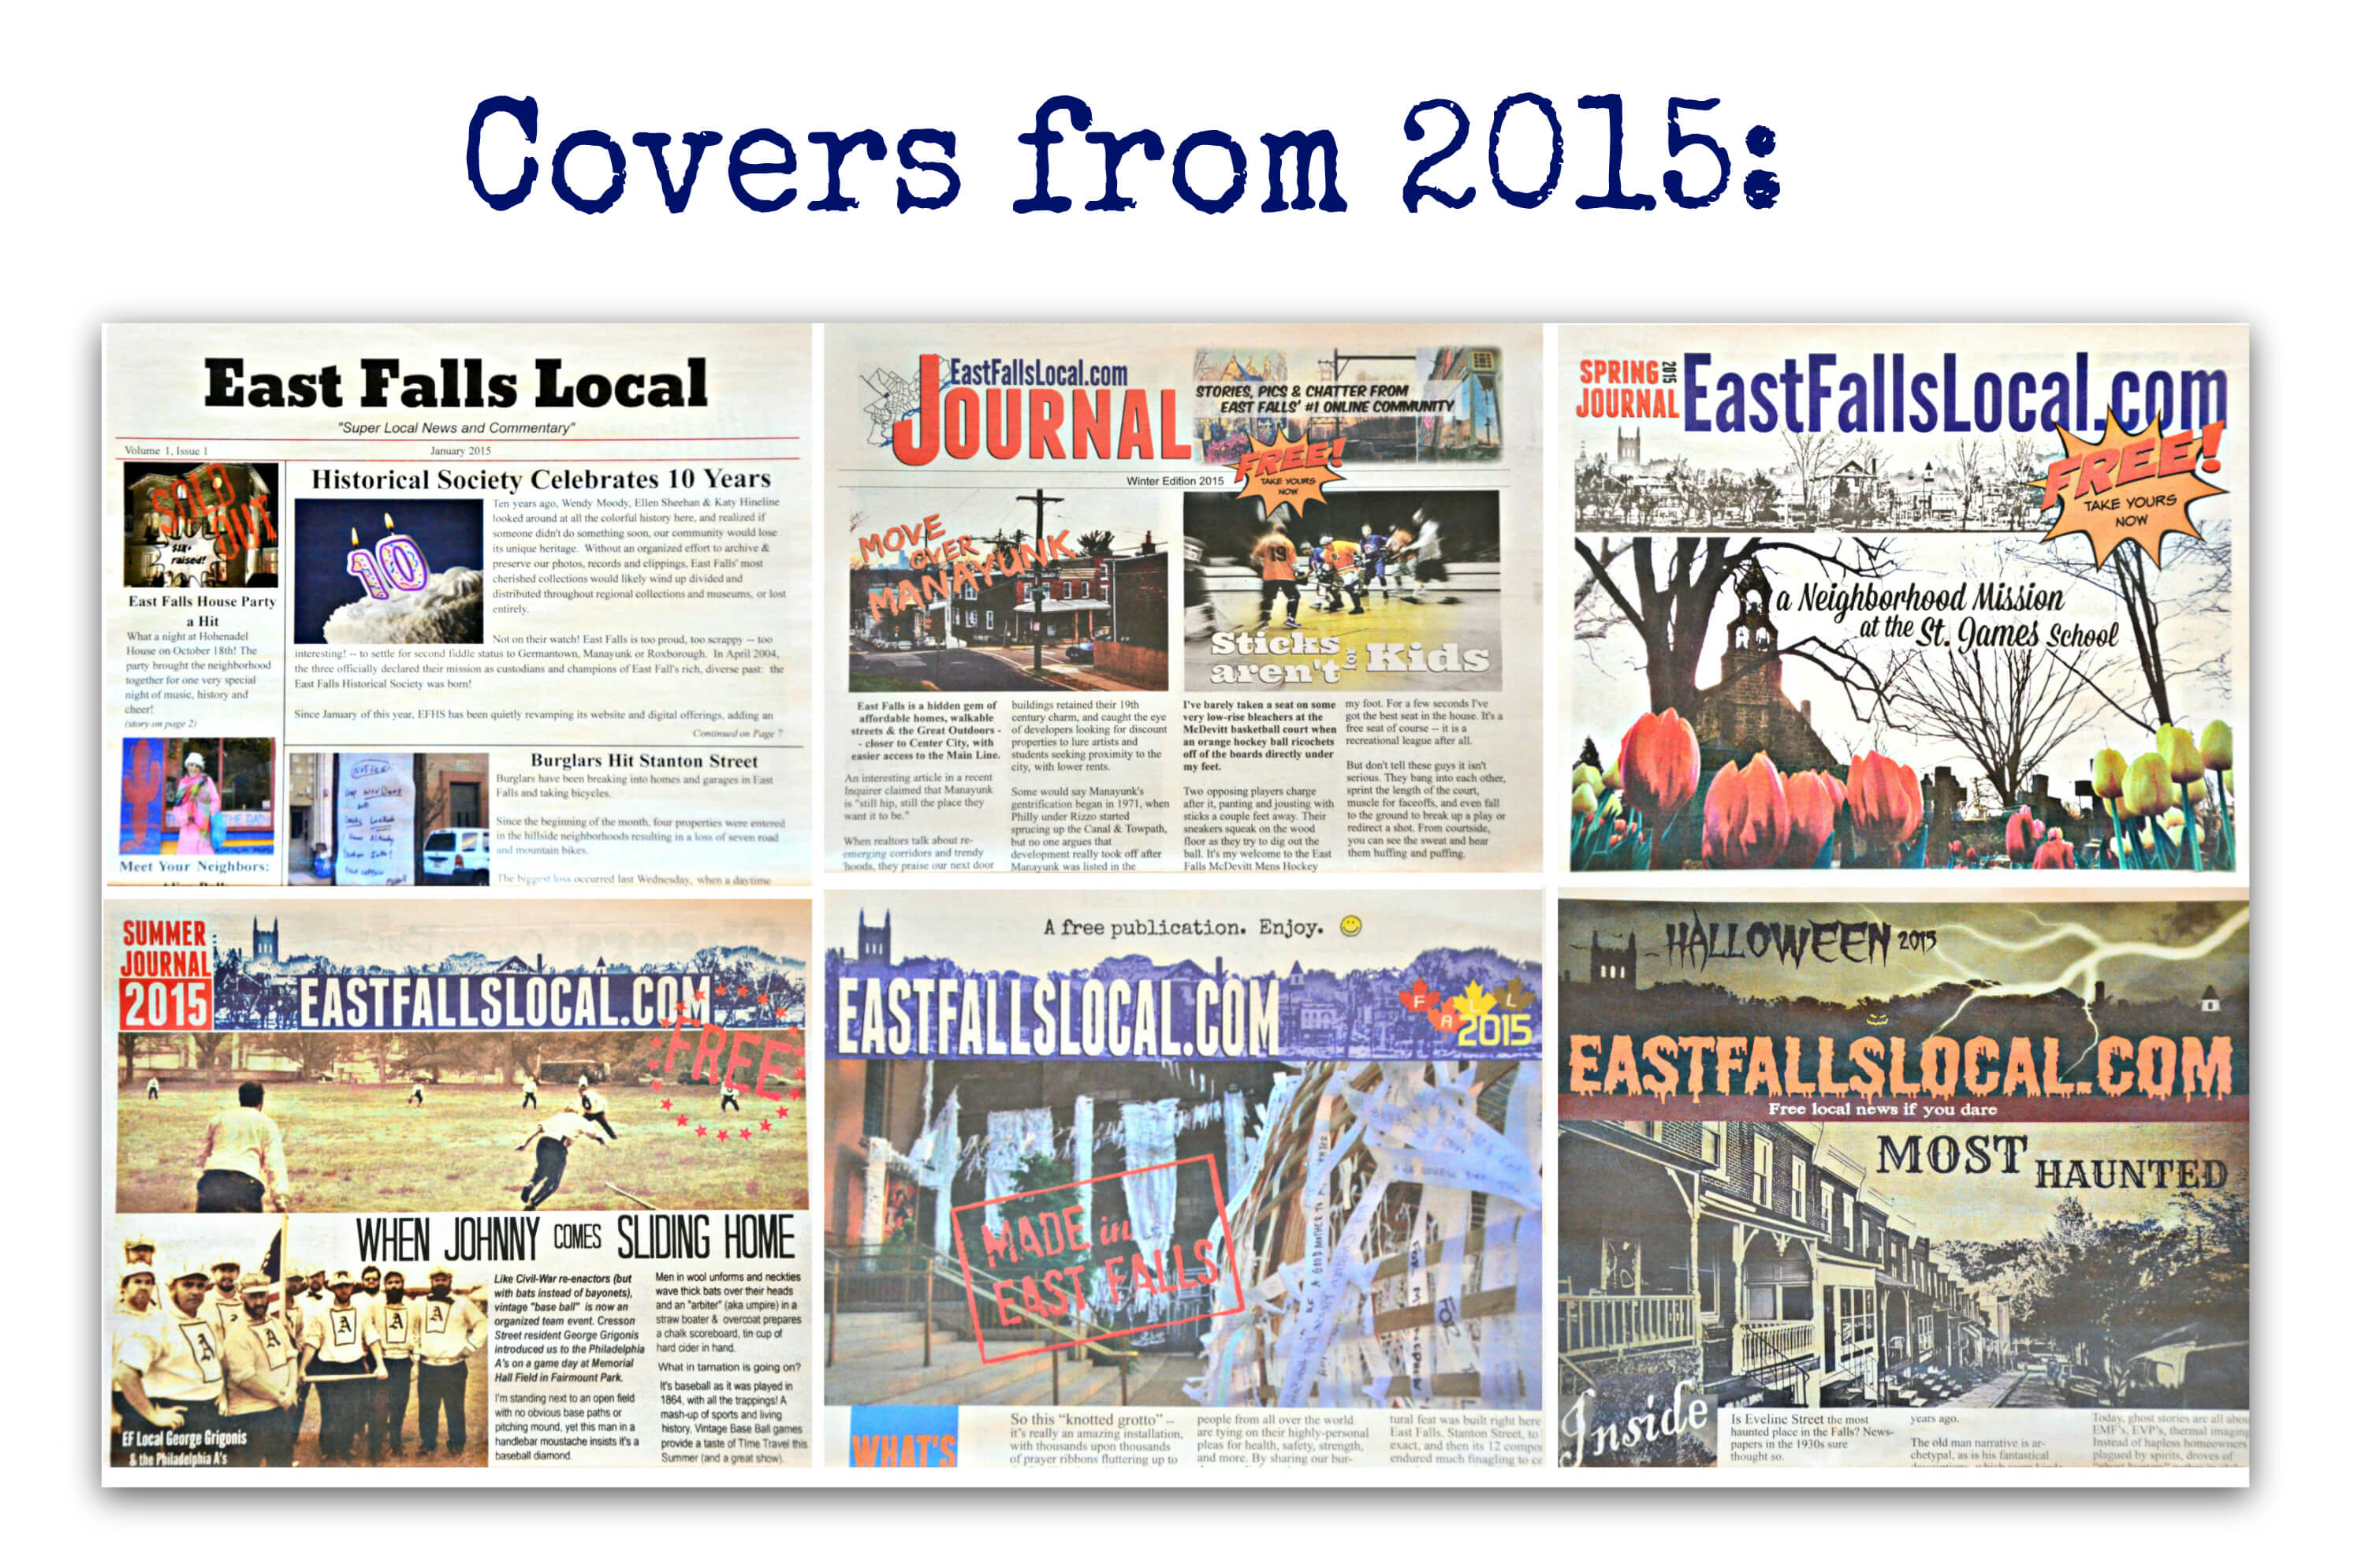 EastFallsLocal collage covers from 2015